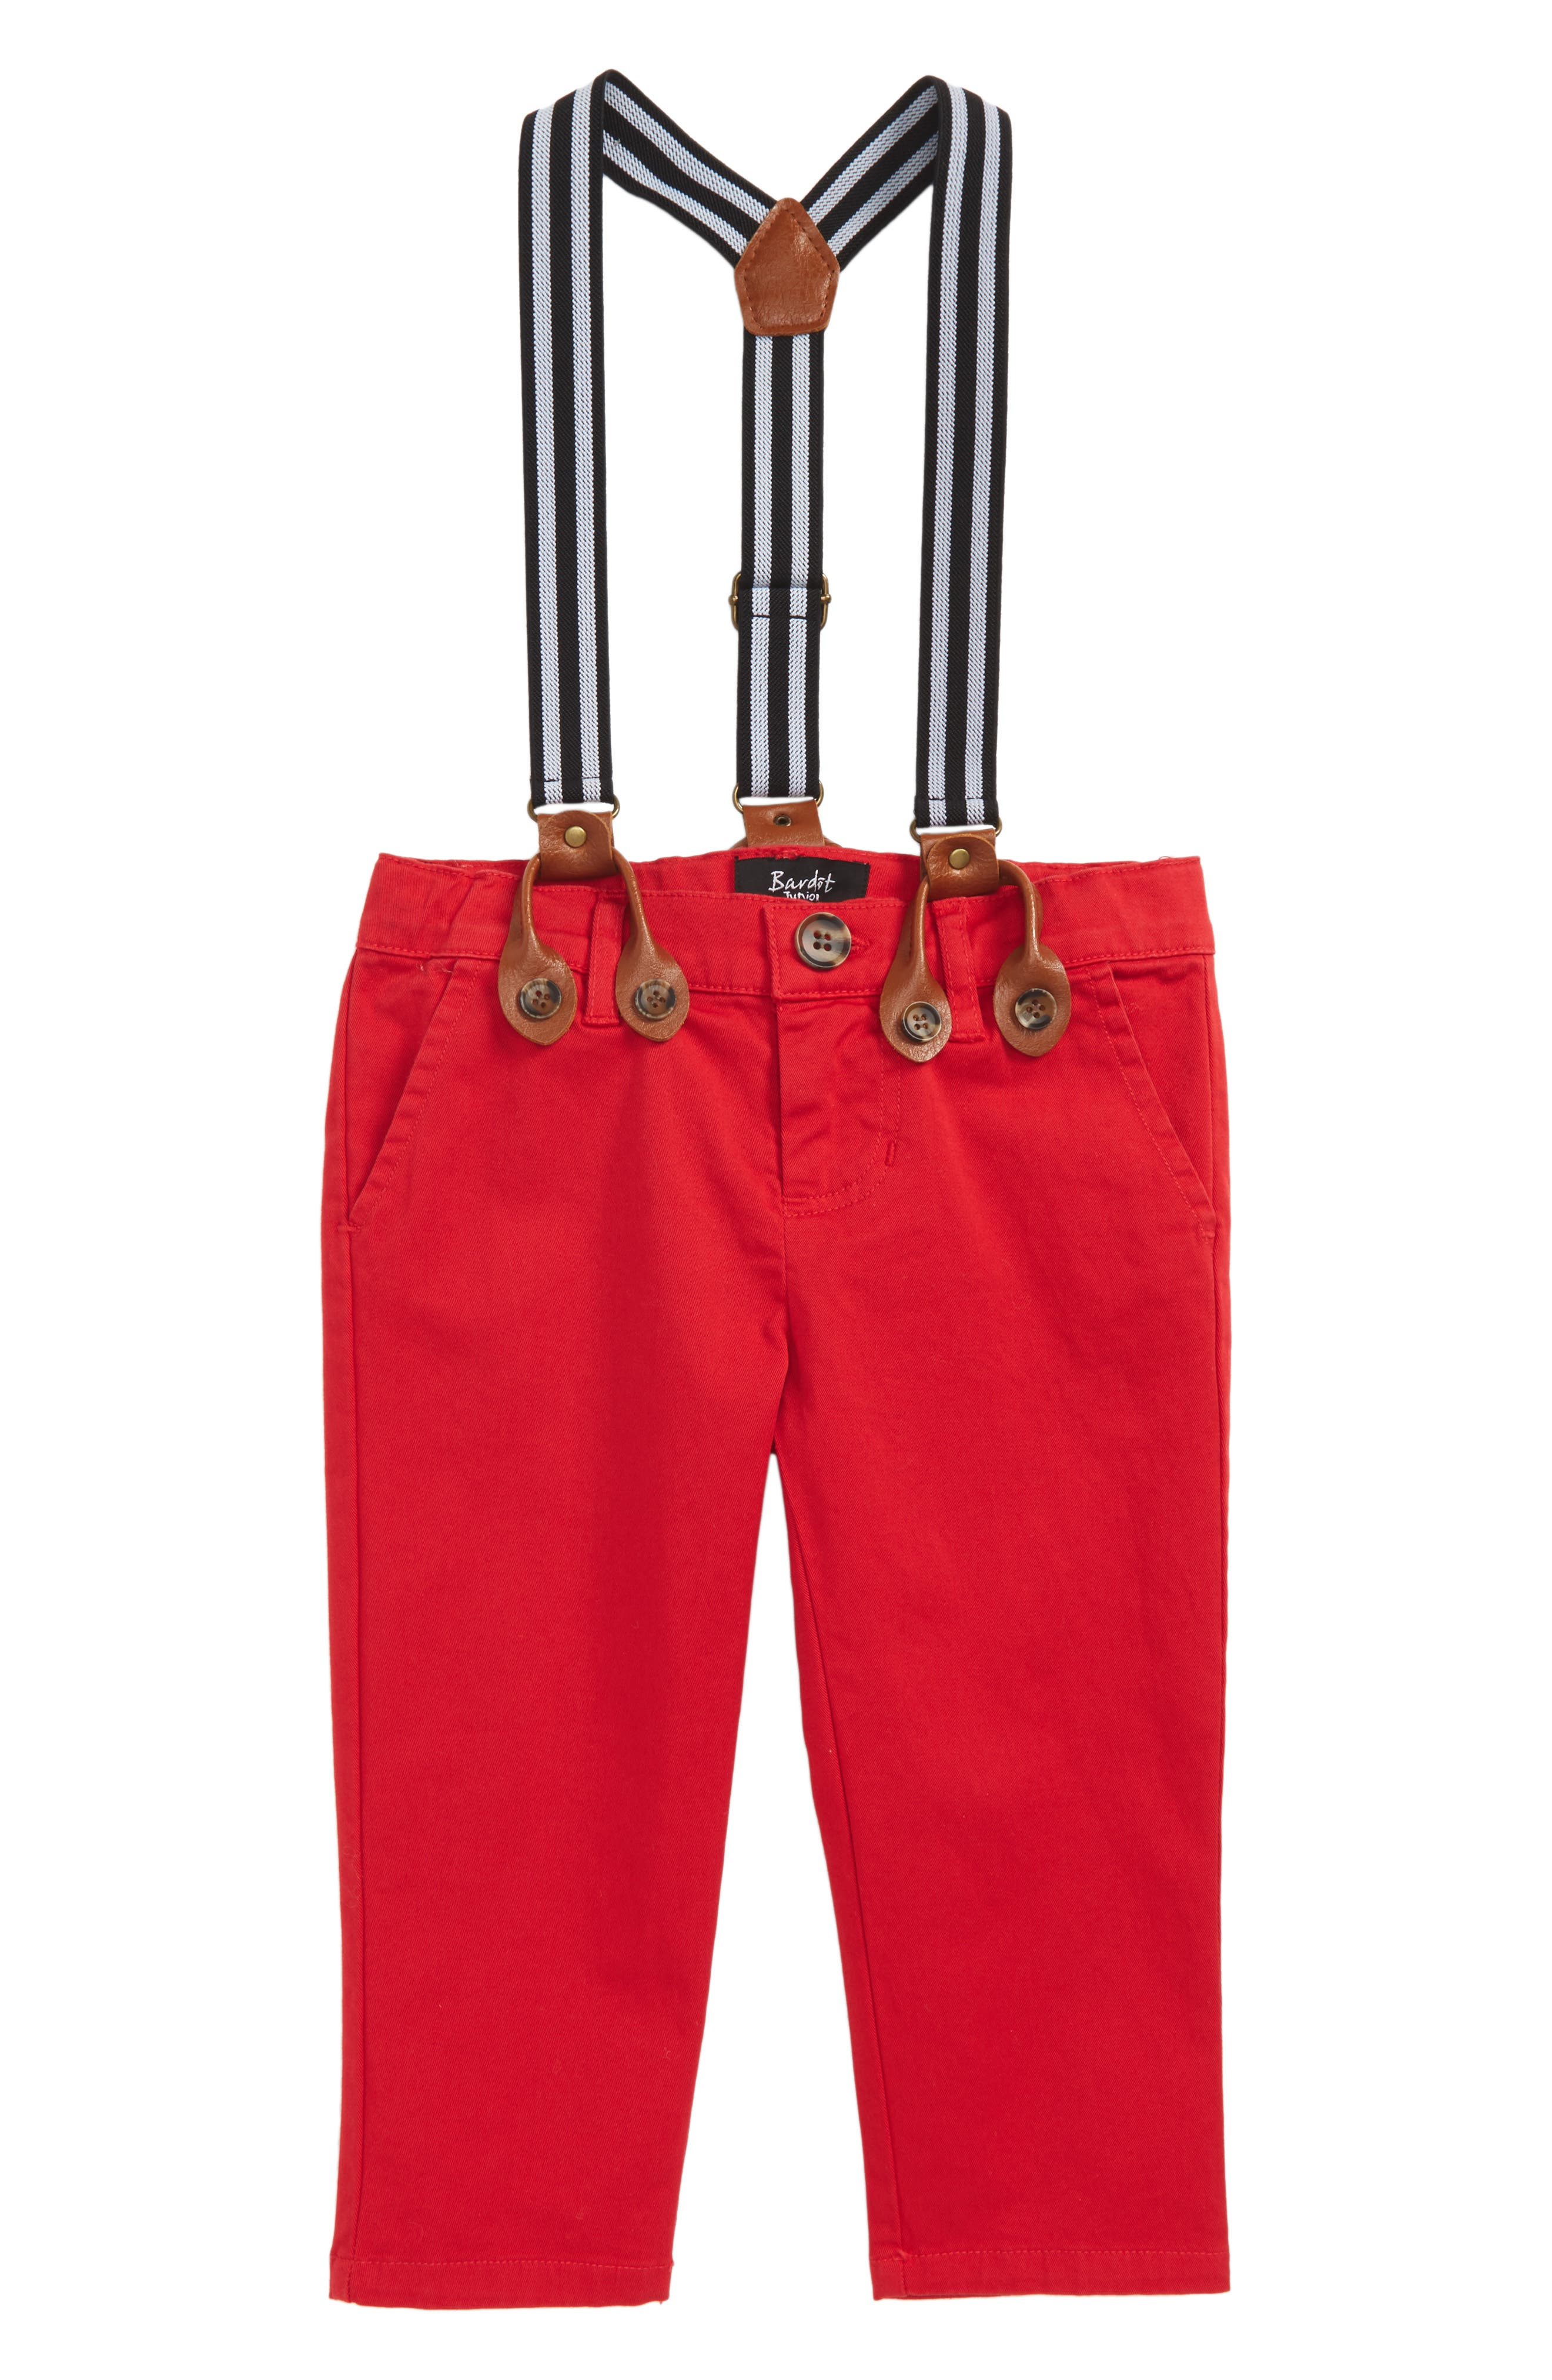 Bardot Junior Chinos & Suspenders Set (Baby Boys)